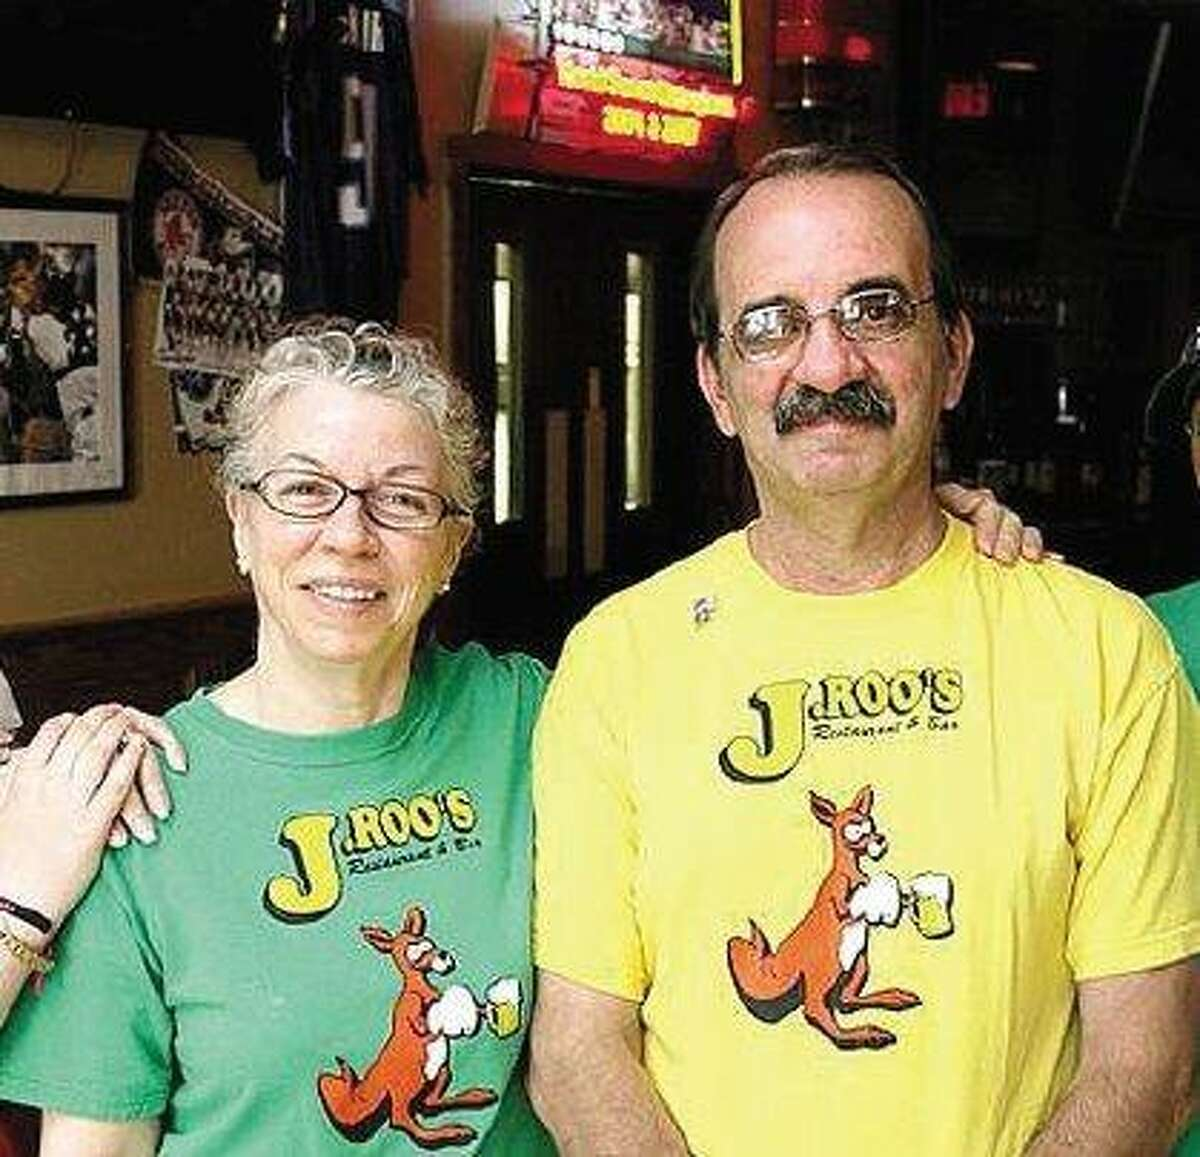 Virginia Mazzaro is listed as the owner of J. Roo's, while her husband, Sal, right, and their children run it. Virginia Mazzaro pleaded guilty in federal court in Hartford to one count of tax evasion. (Register file photo)